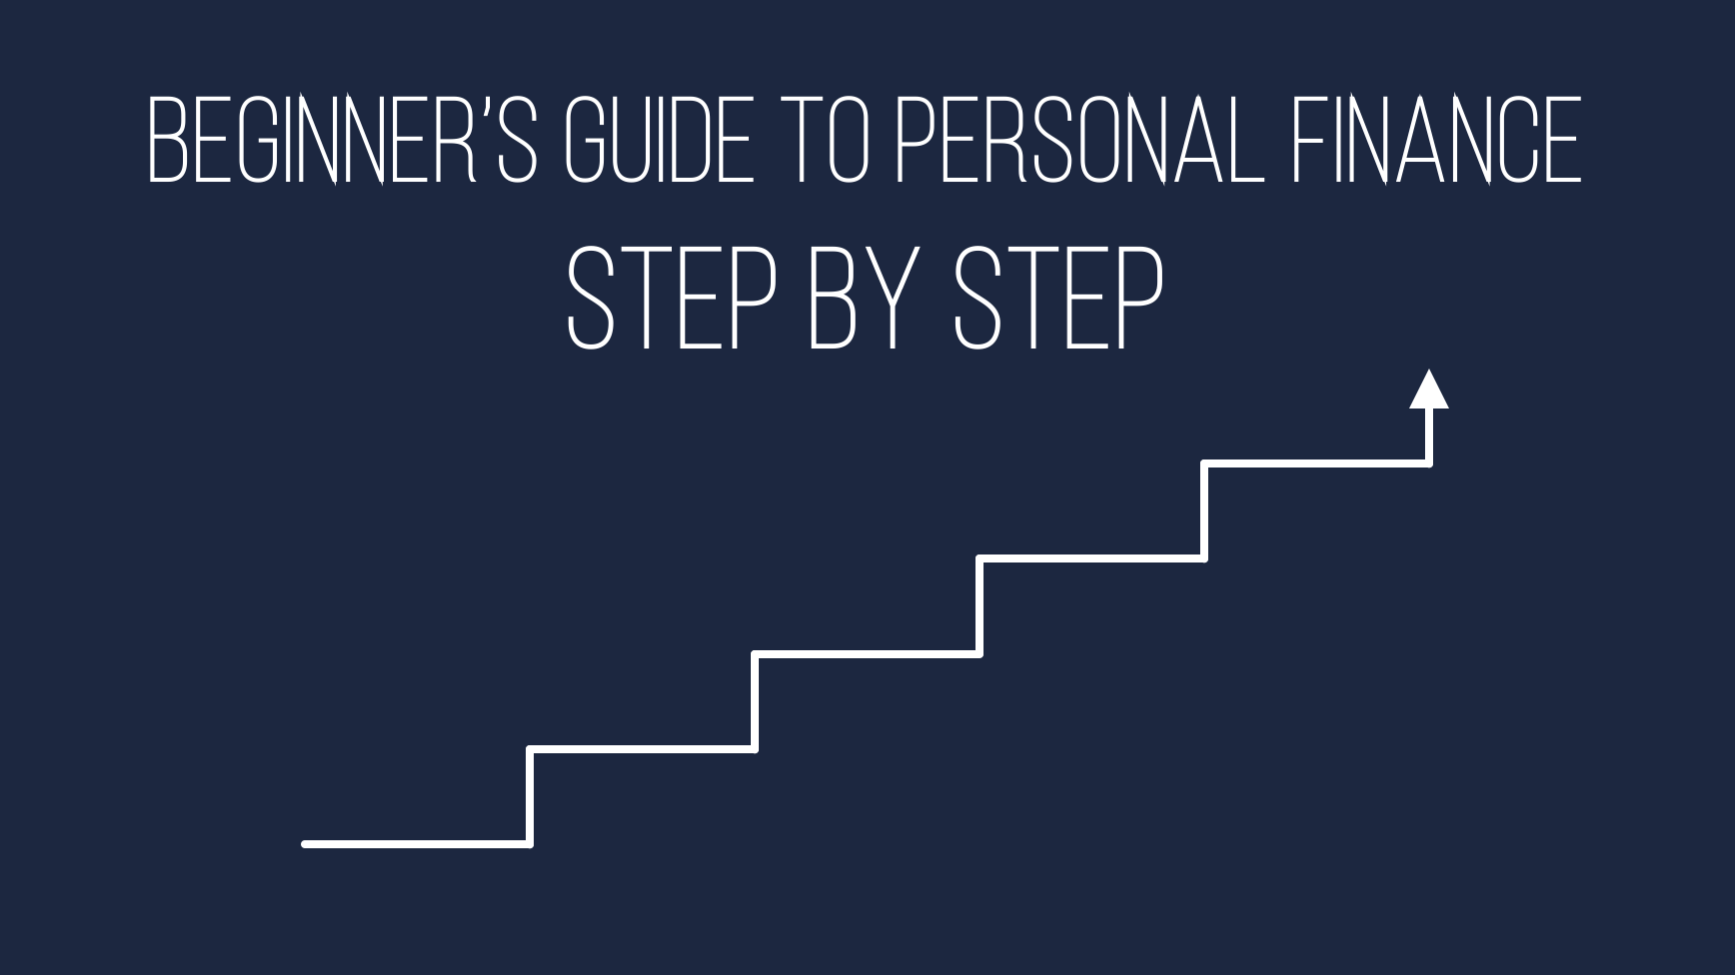 Step by step beginner's guide to personal finance